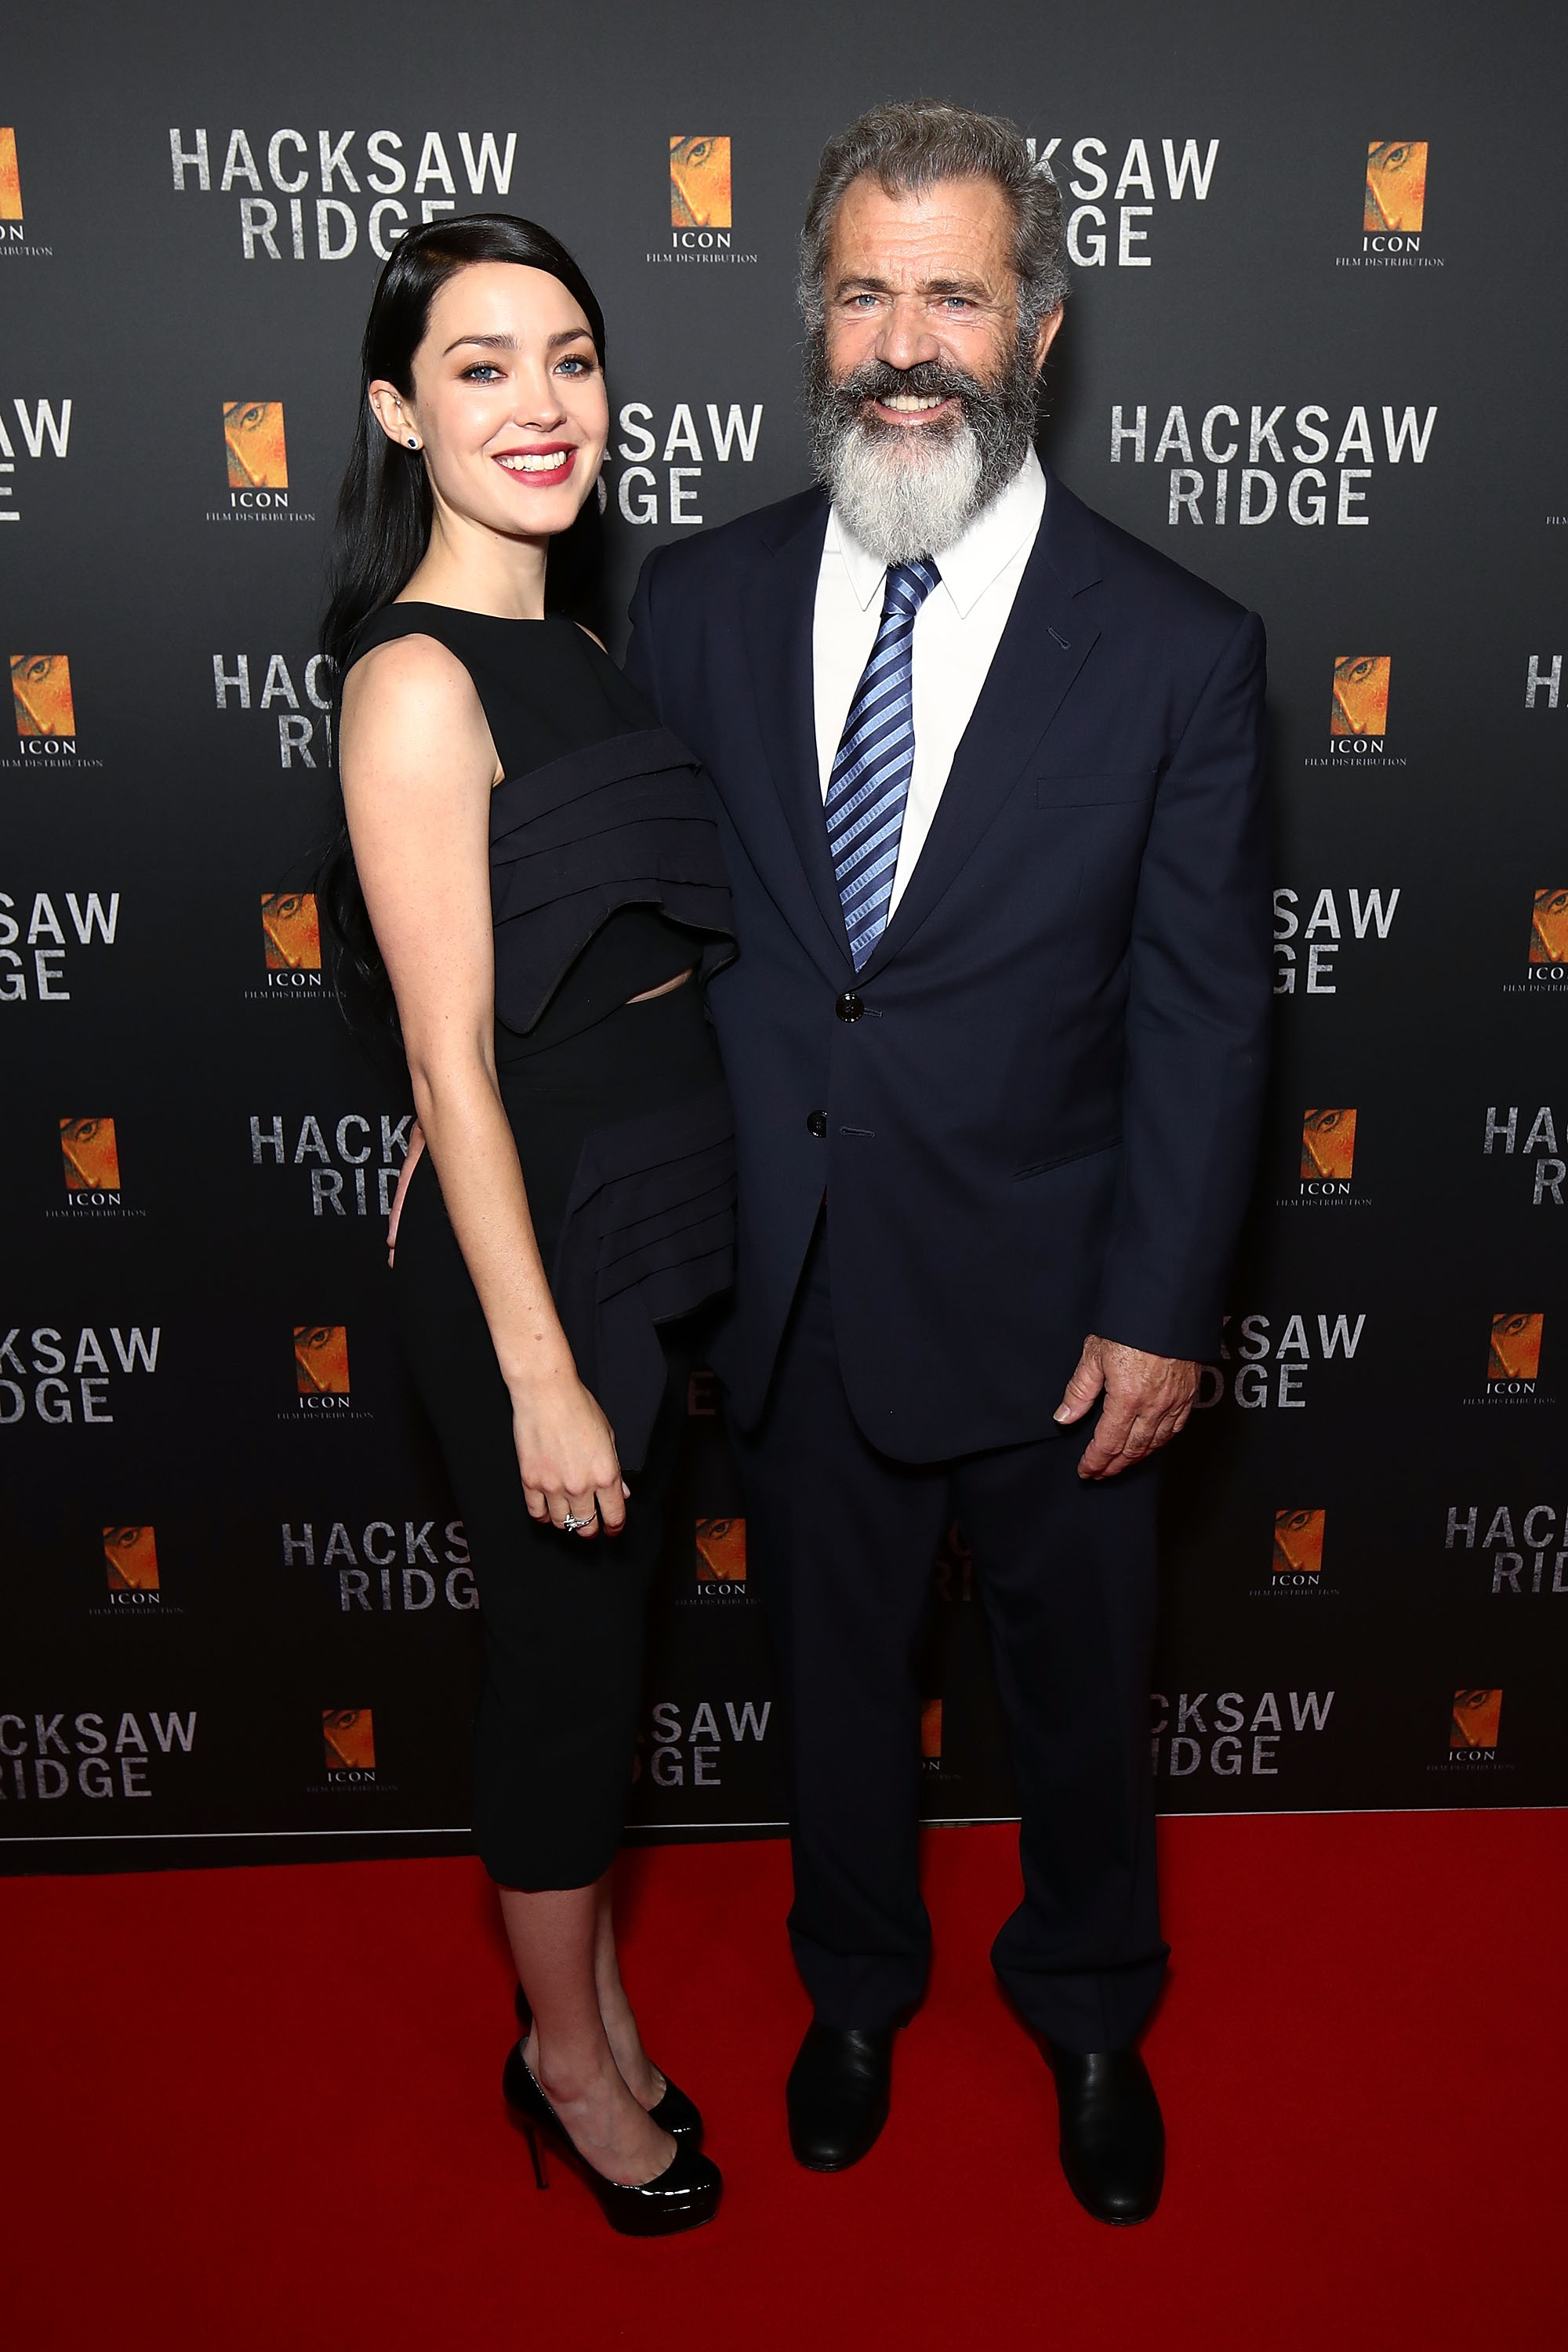 SYDNEY, AUSTRALIA - OCTOBER 16:  Rosalind Ross and Mel Gibson arrive ahead of the Australian premiere of Hacksaw Ridge at State Theatre on October 16, 2016 in Sydney, Australia.  (Photo by Brendon Thorne/Getty Images)